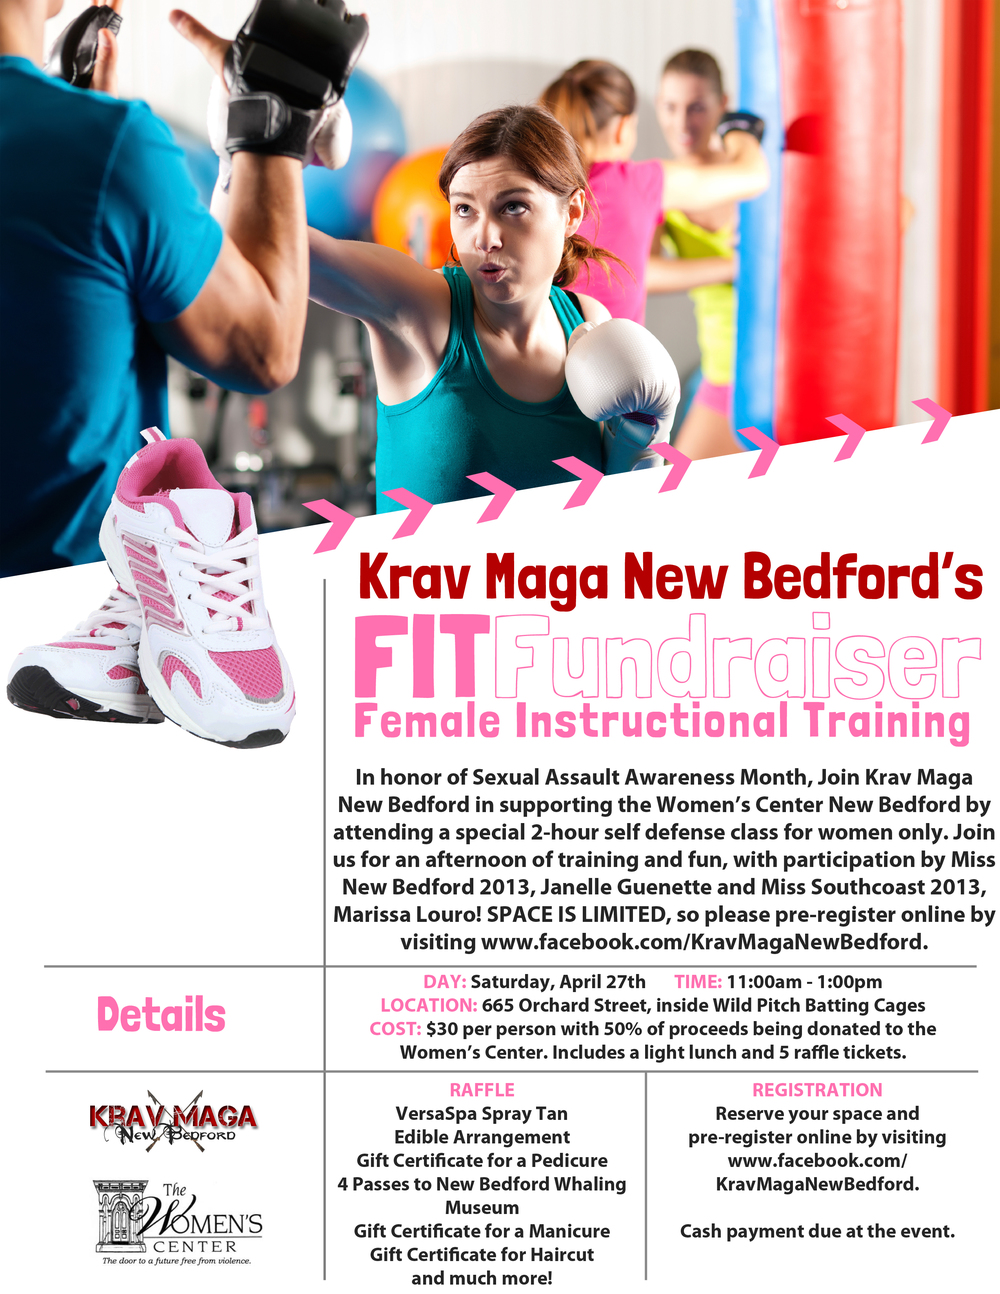 FITFundraiser Flyer for Krav Maga New Bedford